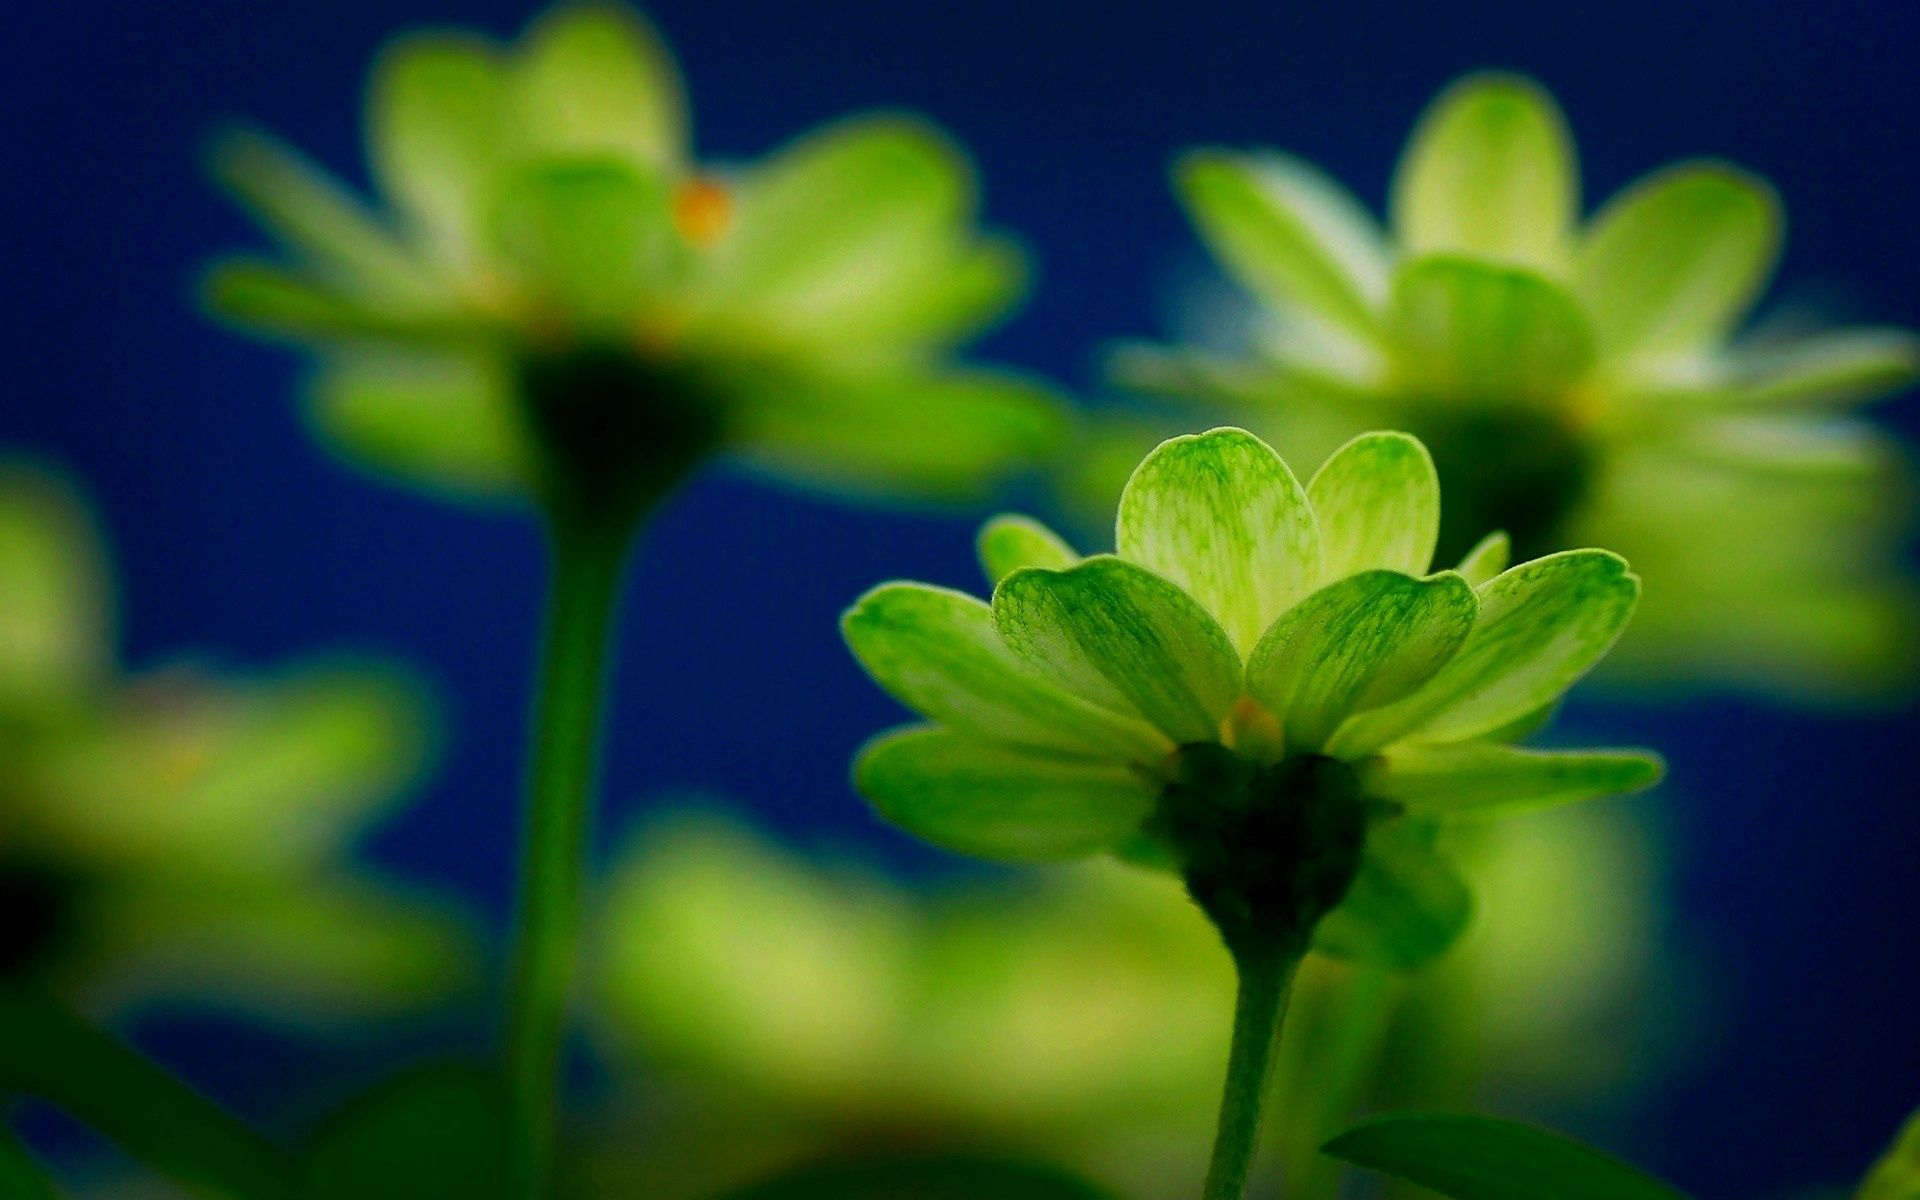 147341 download wallpaper Macro, Plant, Greens, Stem, Stalk, Flowers screensavers and pictures for free